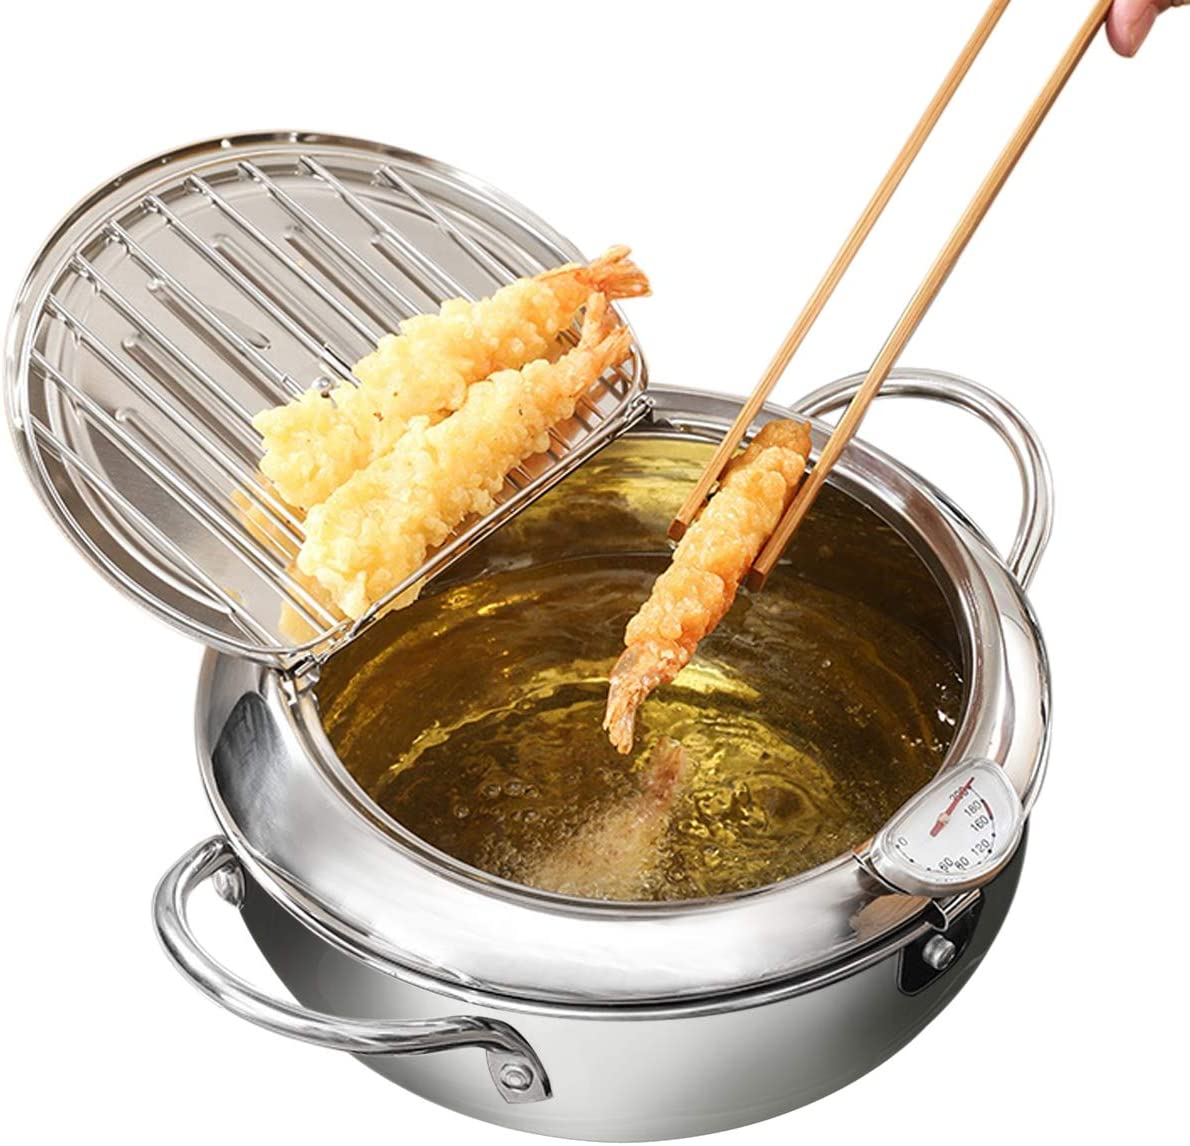 Deep Fryer Pot - Stainless Steel Japanese Tempura Fryer - Oil Drip Drainer Rack with Thermometer - Small Cooking Pot with Rack and Lid For Kitchen (3400 ML 9.4